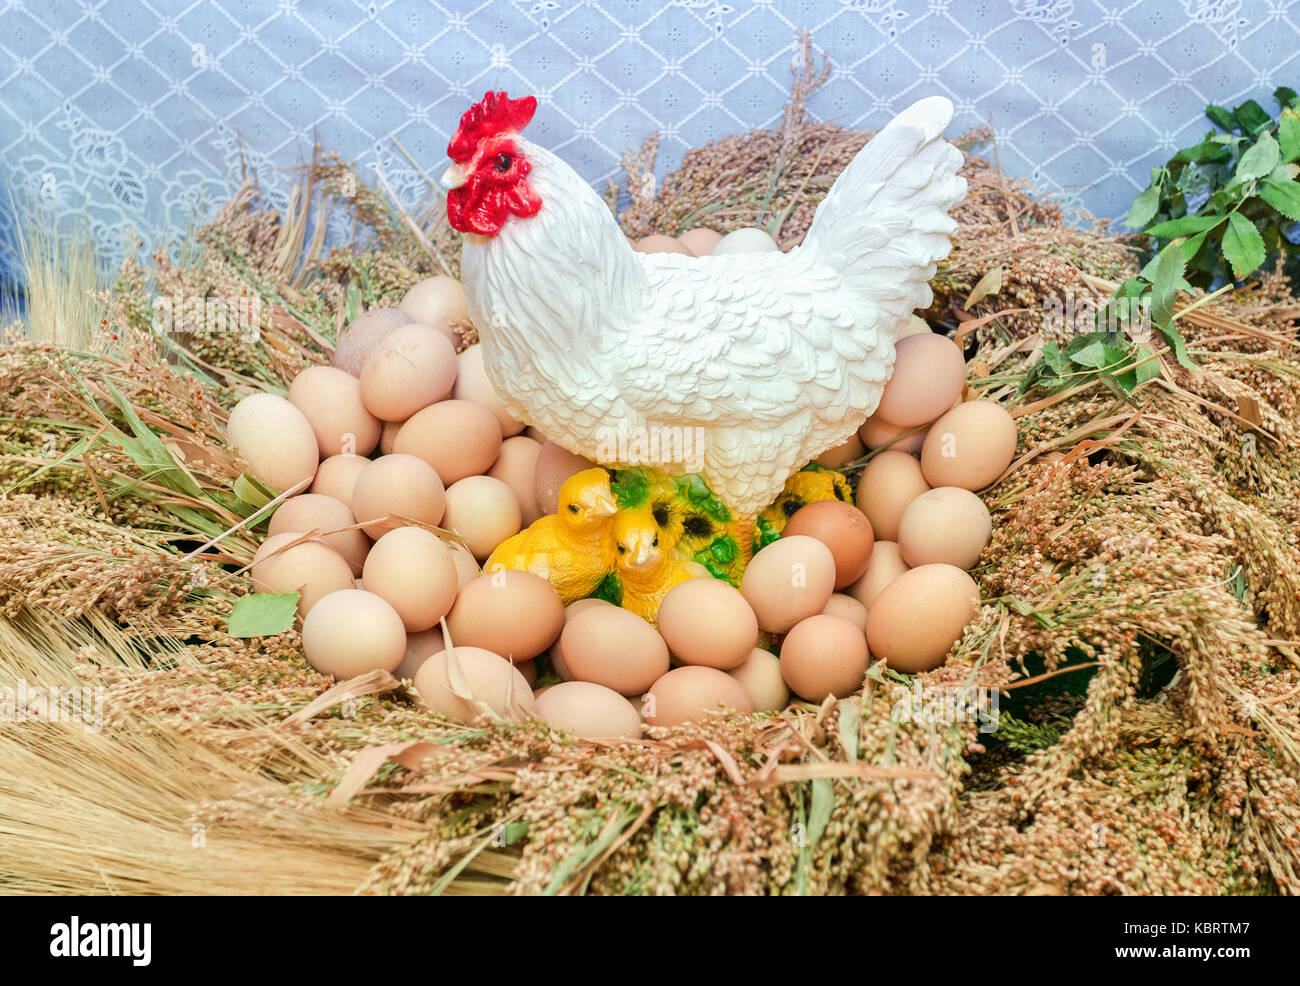 Plastic figure of white chicken, chicks and natural eggs - Stock Image